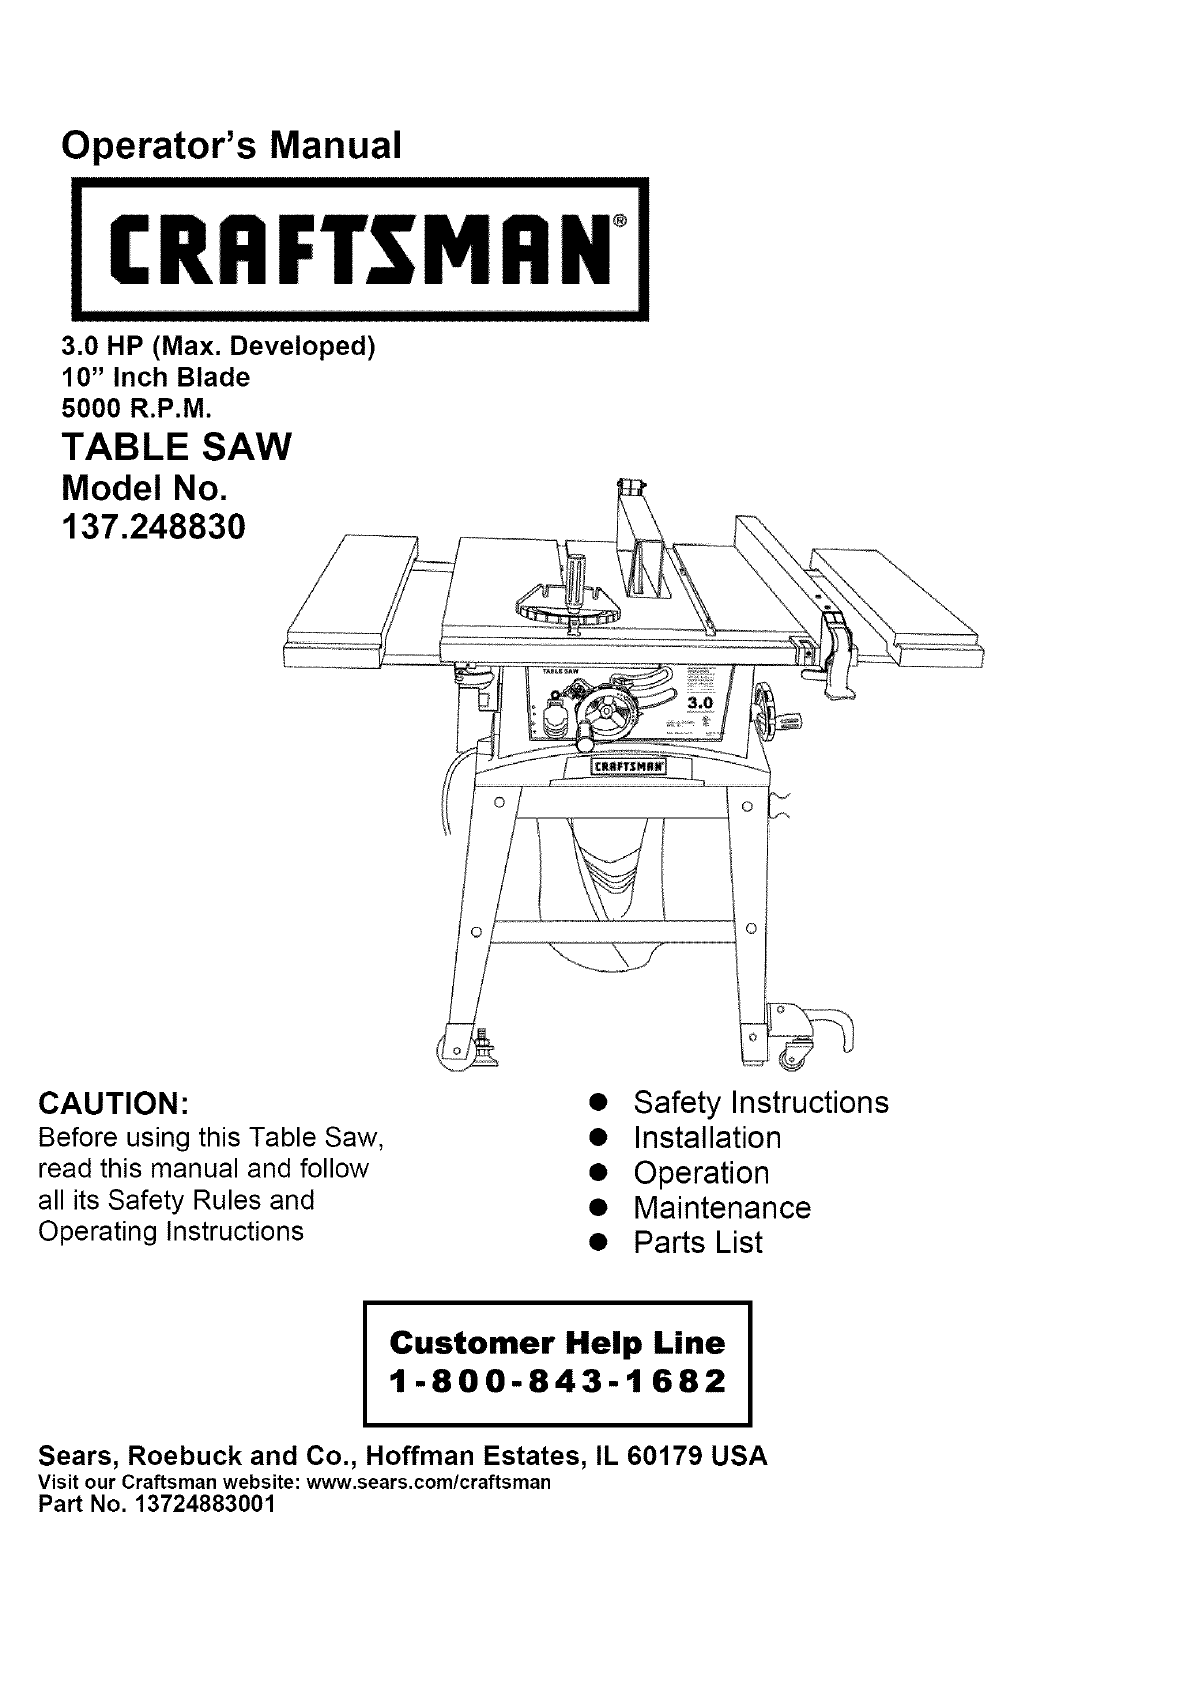 e99c86ed 3ba5 4bb5 a567 3b4fffebfc1f bg1 craftsman saw 137 248830 user guide manualsonline com Sears Craftsman 10 Inch Table Saw at readyjetset.co